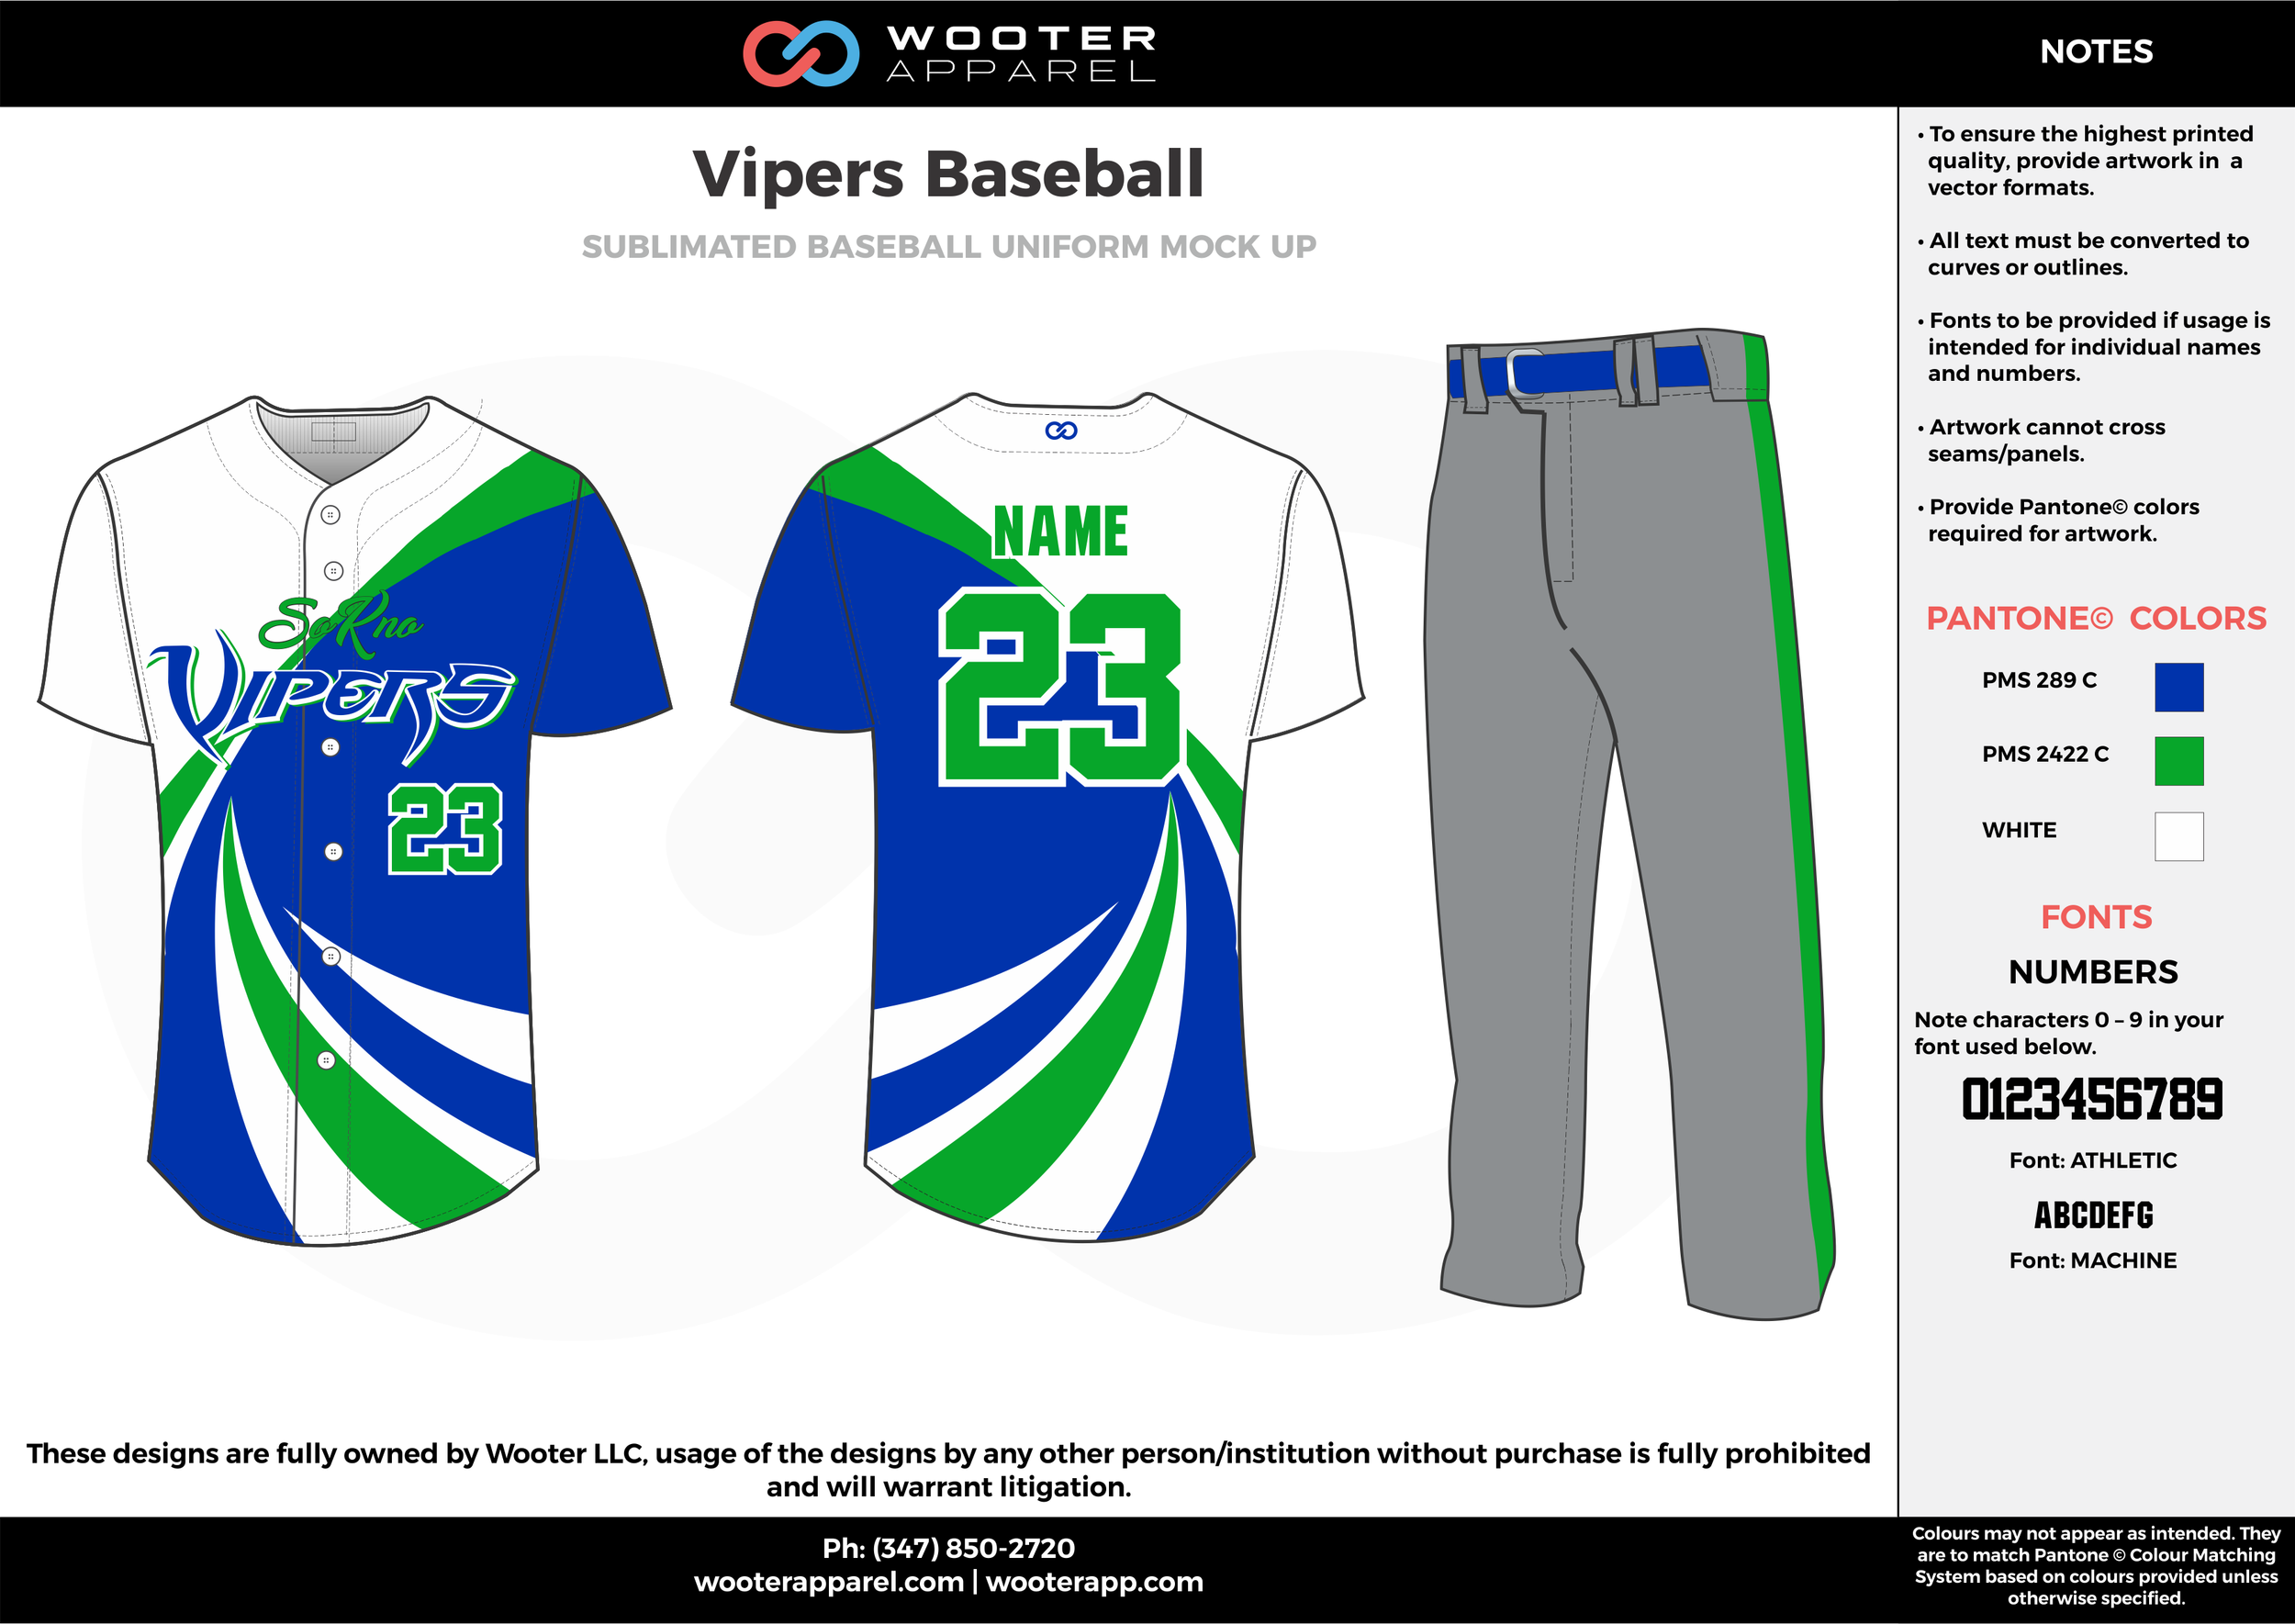 VIPERS BASEBALL green blue white gray baseball uniforms jerseys pants